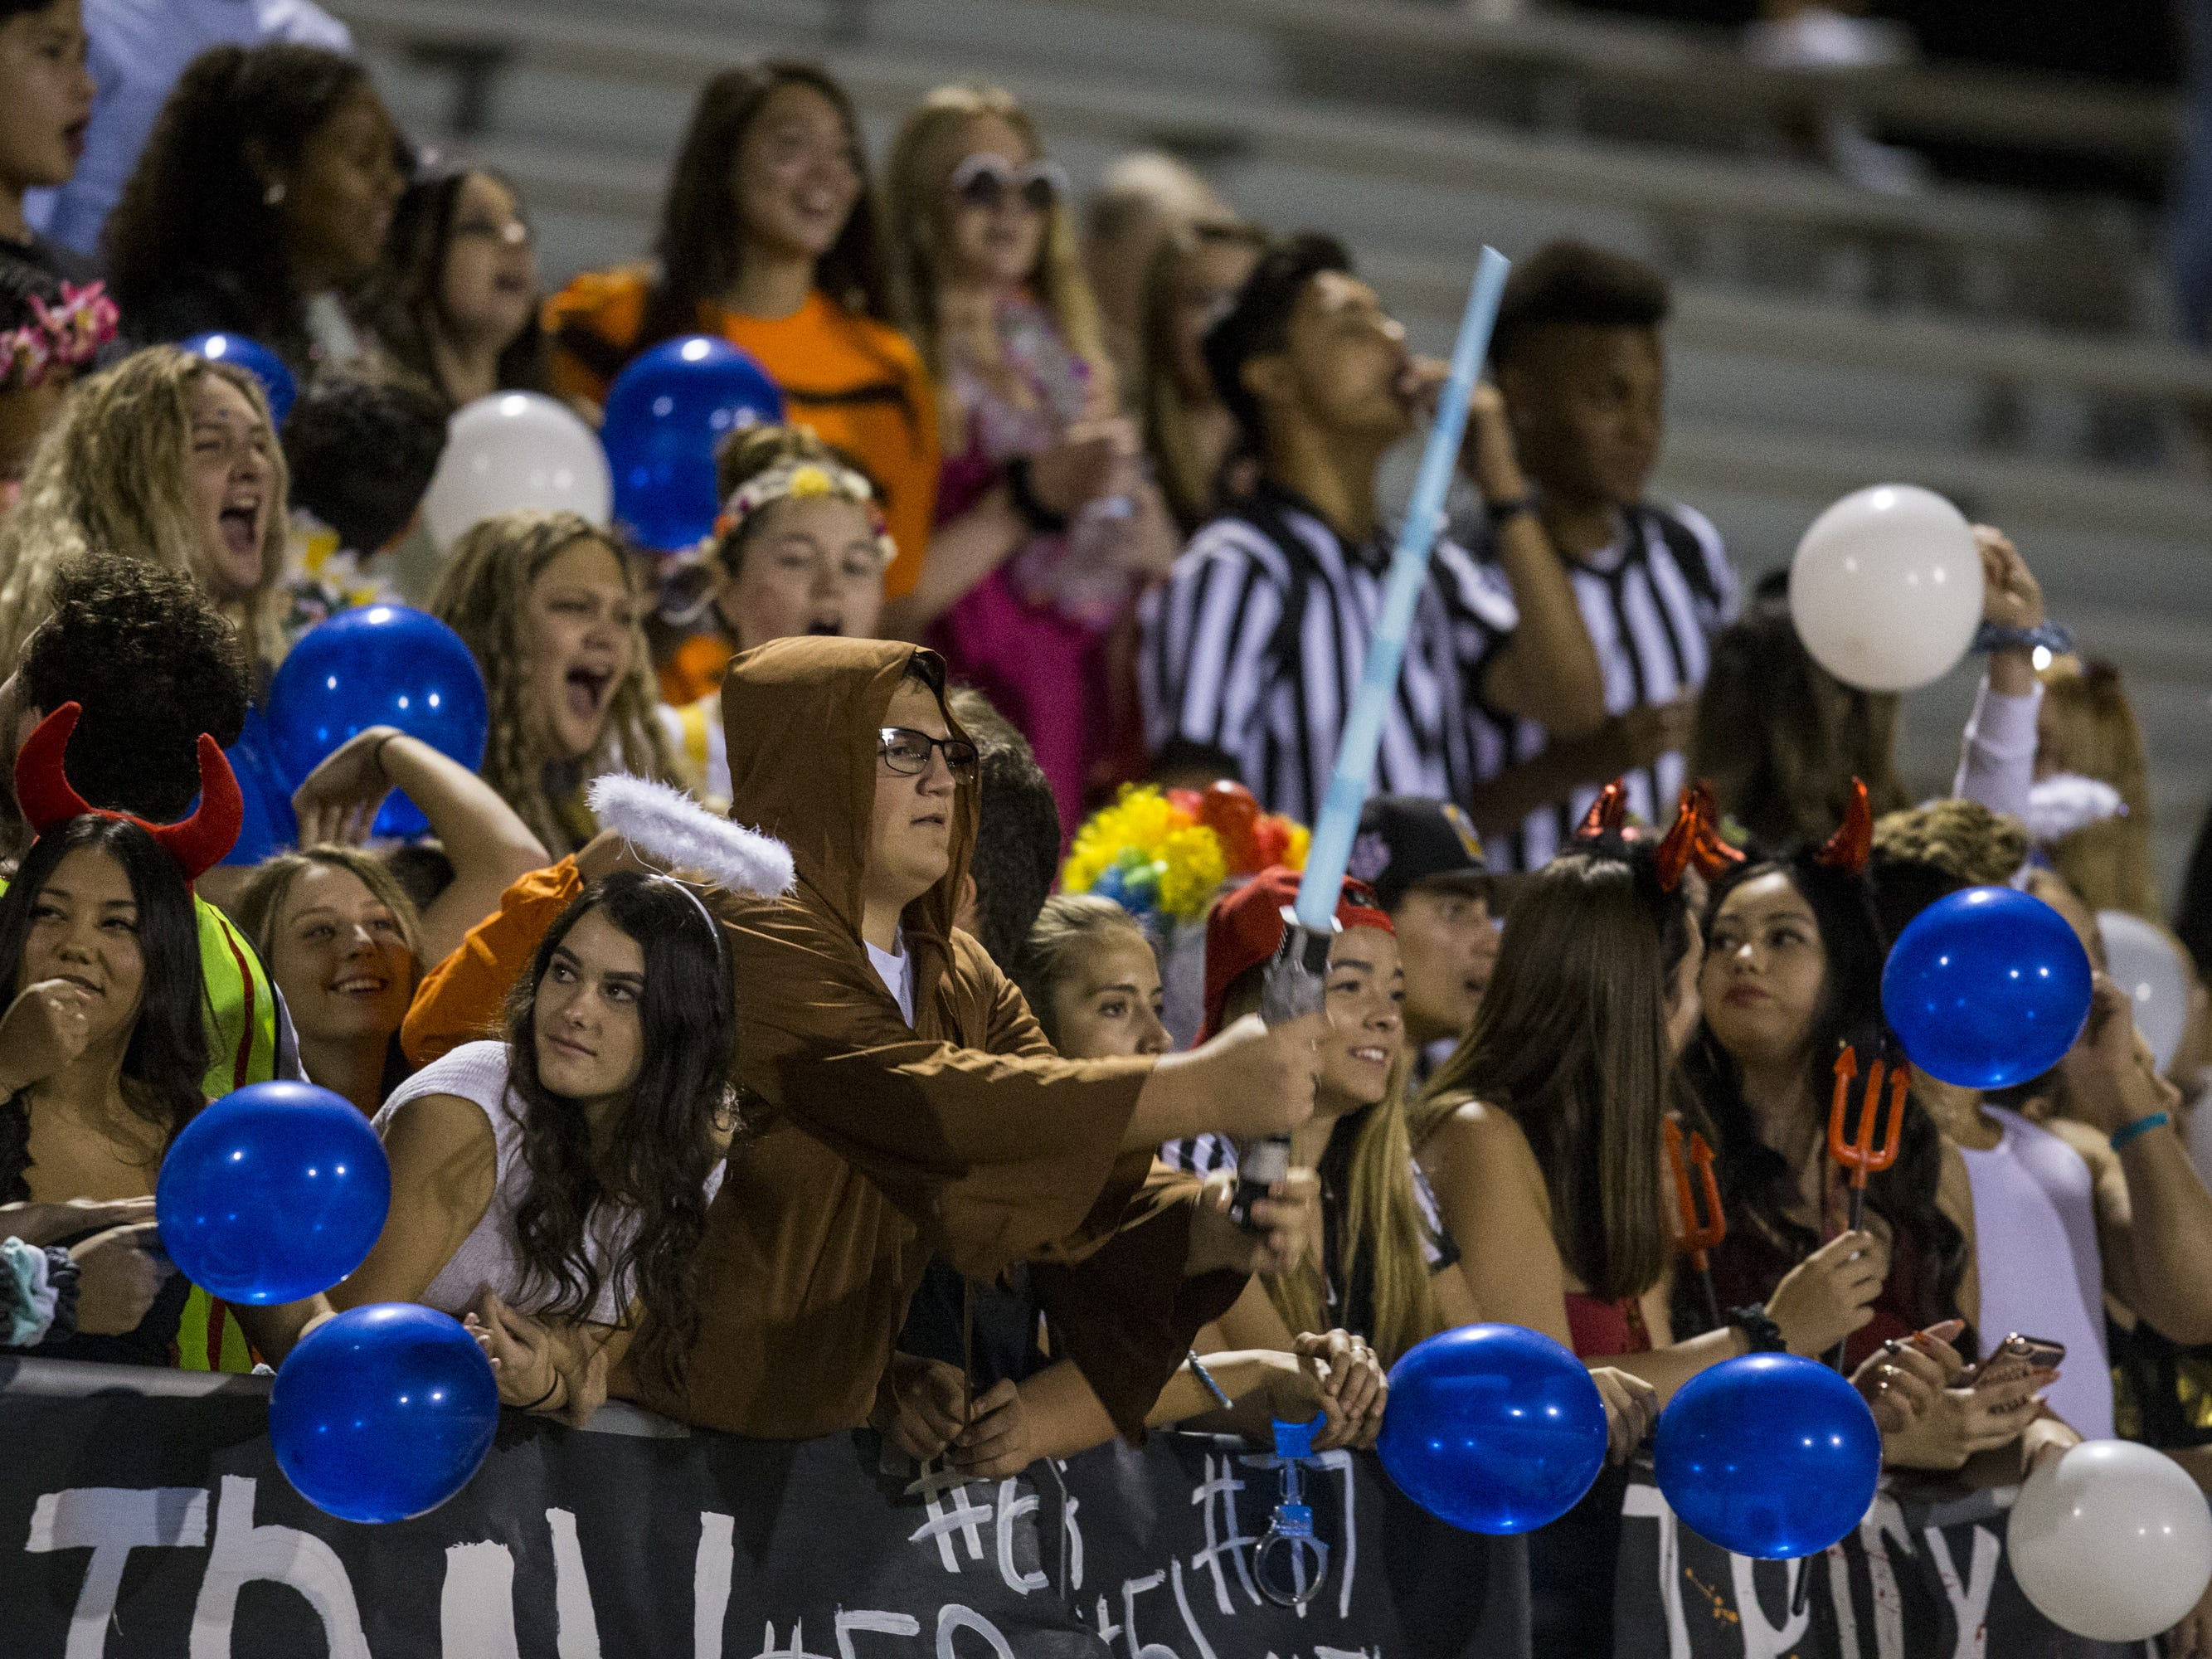 Mesquite fans in costumes watch before the game against Saguaro on Friday, Oct. 26, 2018, at Mesquite High School in Gilbert, Ariz.  #azhsb